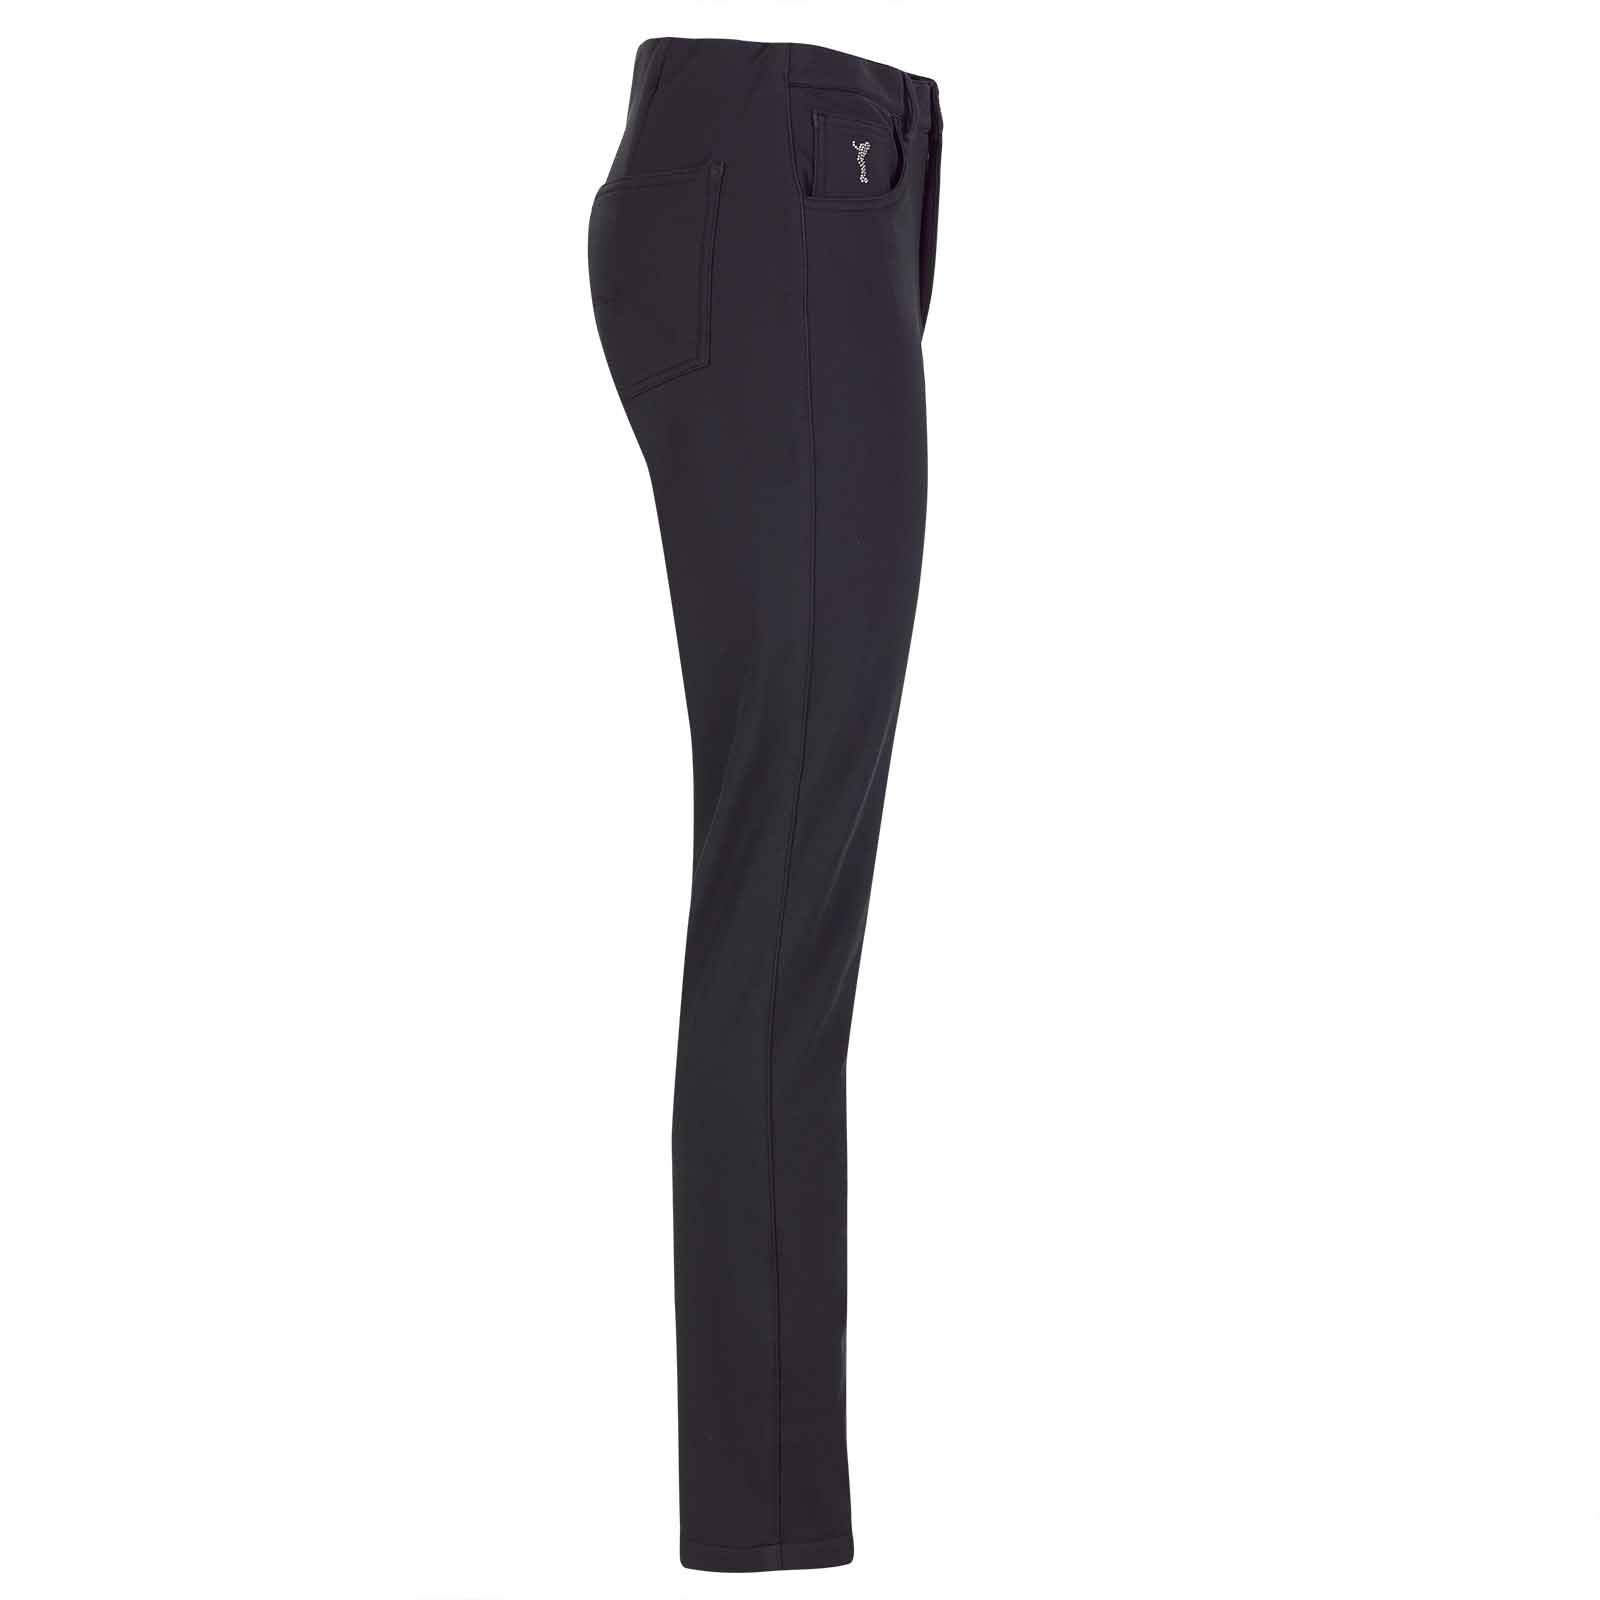 Extraweiche 5 Pocket Damen Slim-Fit Golfhose aus 4-Way-Stretch